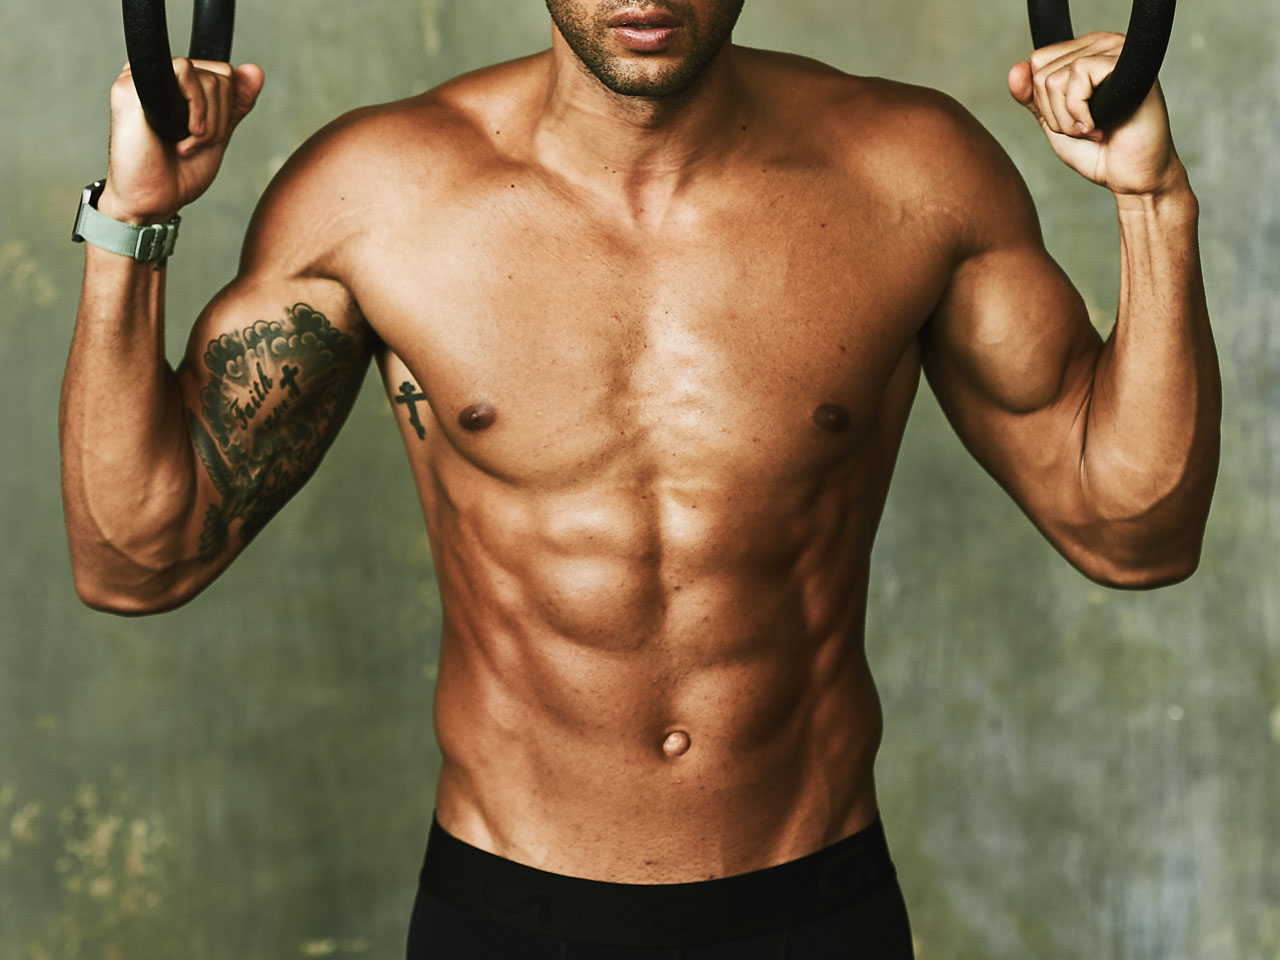 The Workout To Get Magazine Worthy Six Pack Abs